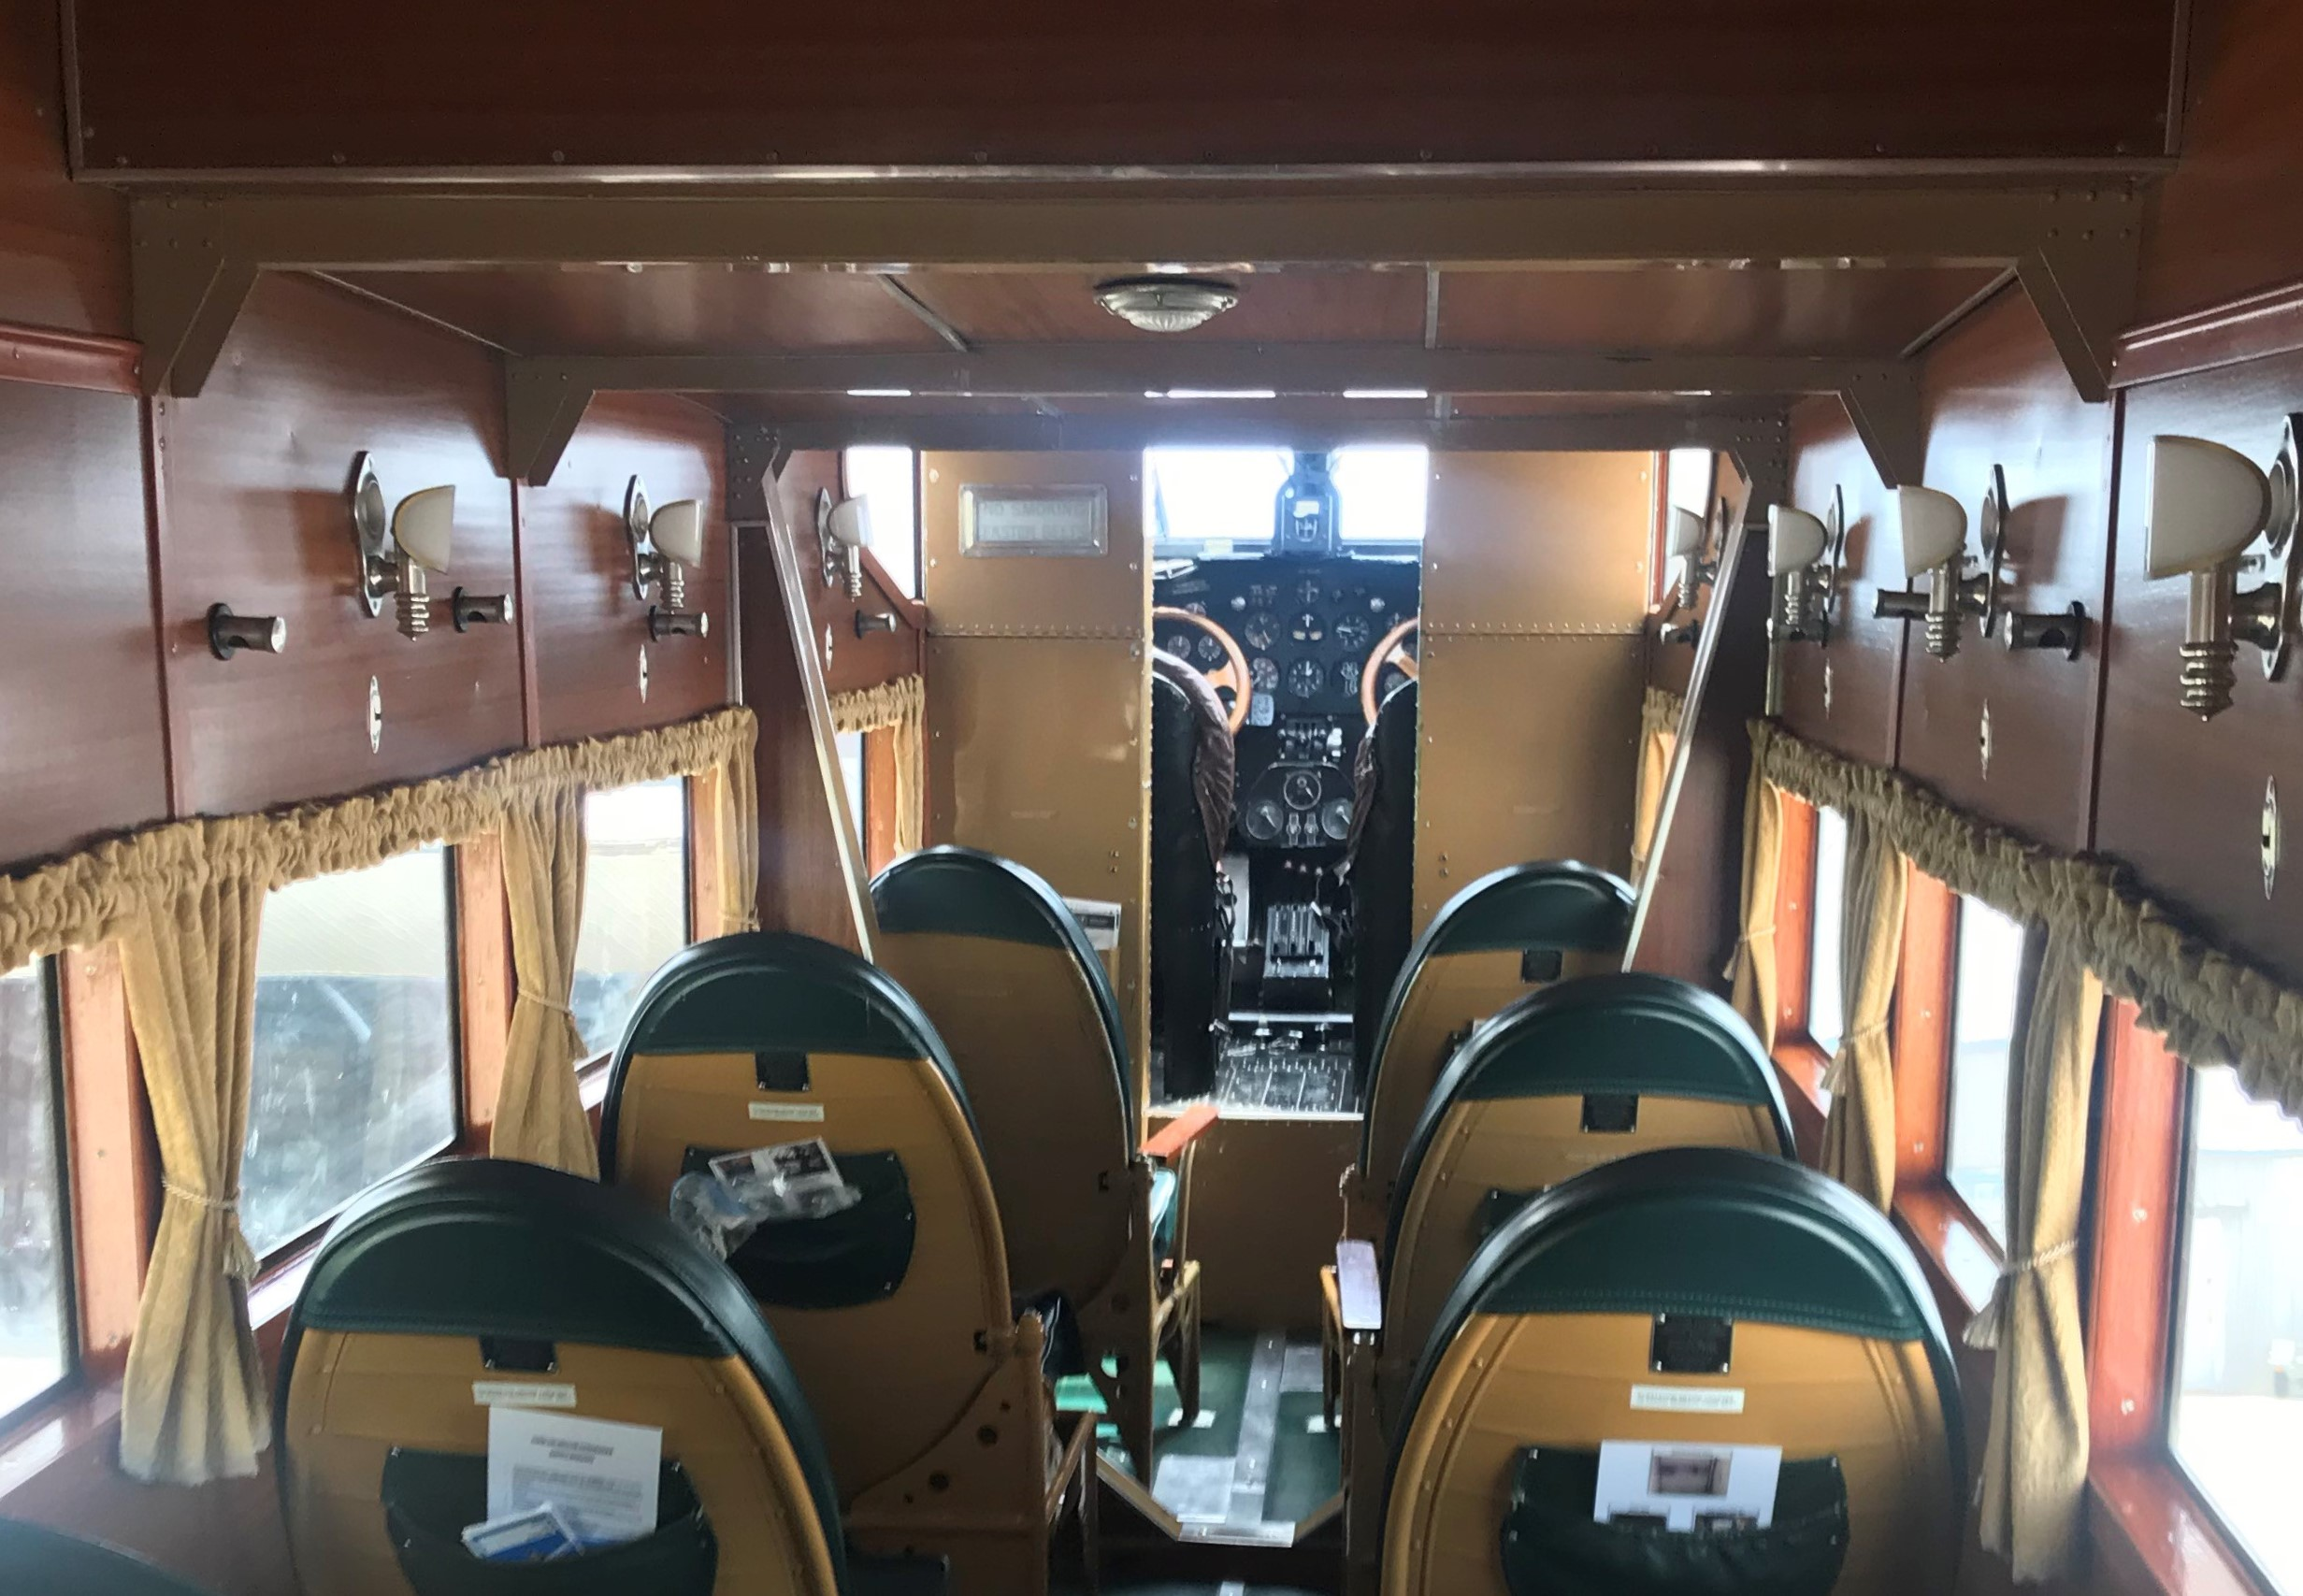 Henry Ford wanted the interior of his Tri-Motor airplane to resemble a rail car to make travelers more comfortable with air travel.